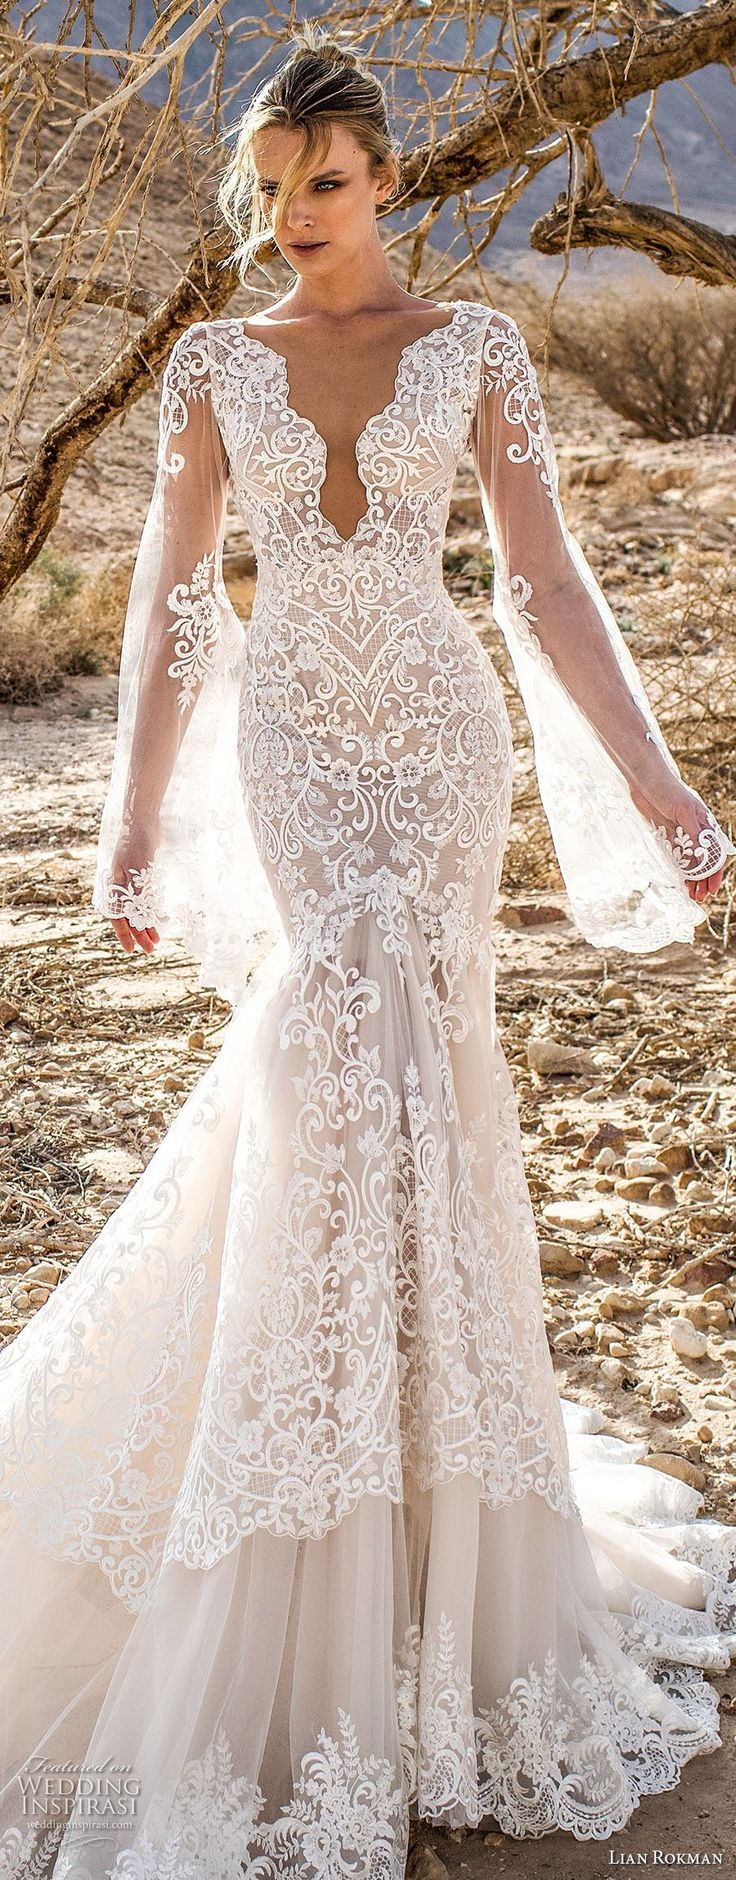 lian rokman 2017 bridal long bell sleeves deep plunging v neck full embellishment elegant sexy mermaid wedding dress open v back chapel train (moonlight) mv -- Lian Rokman 2017 Wedding Dresses #laceweddingdresses